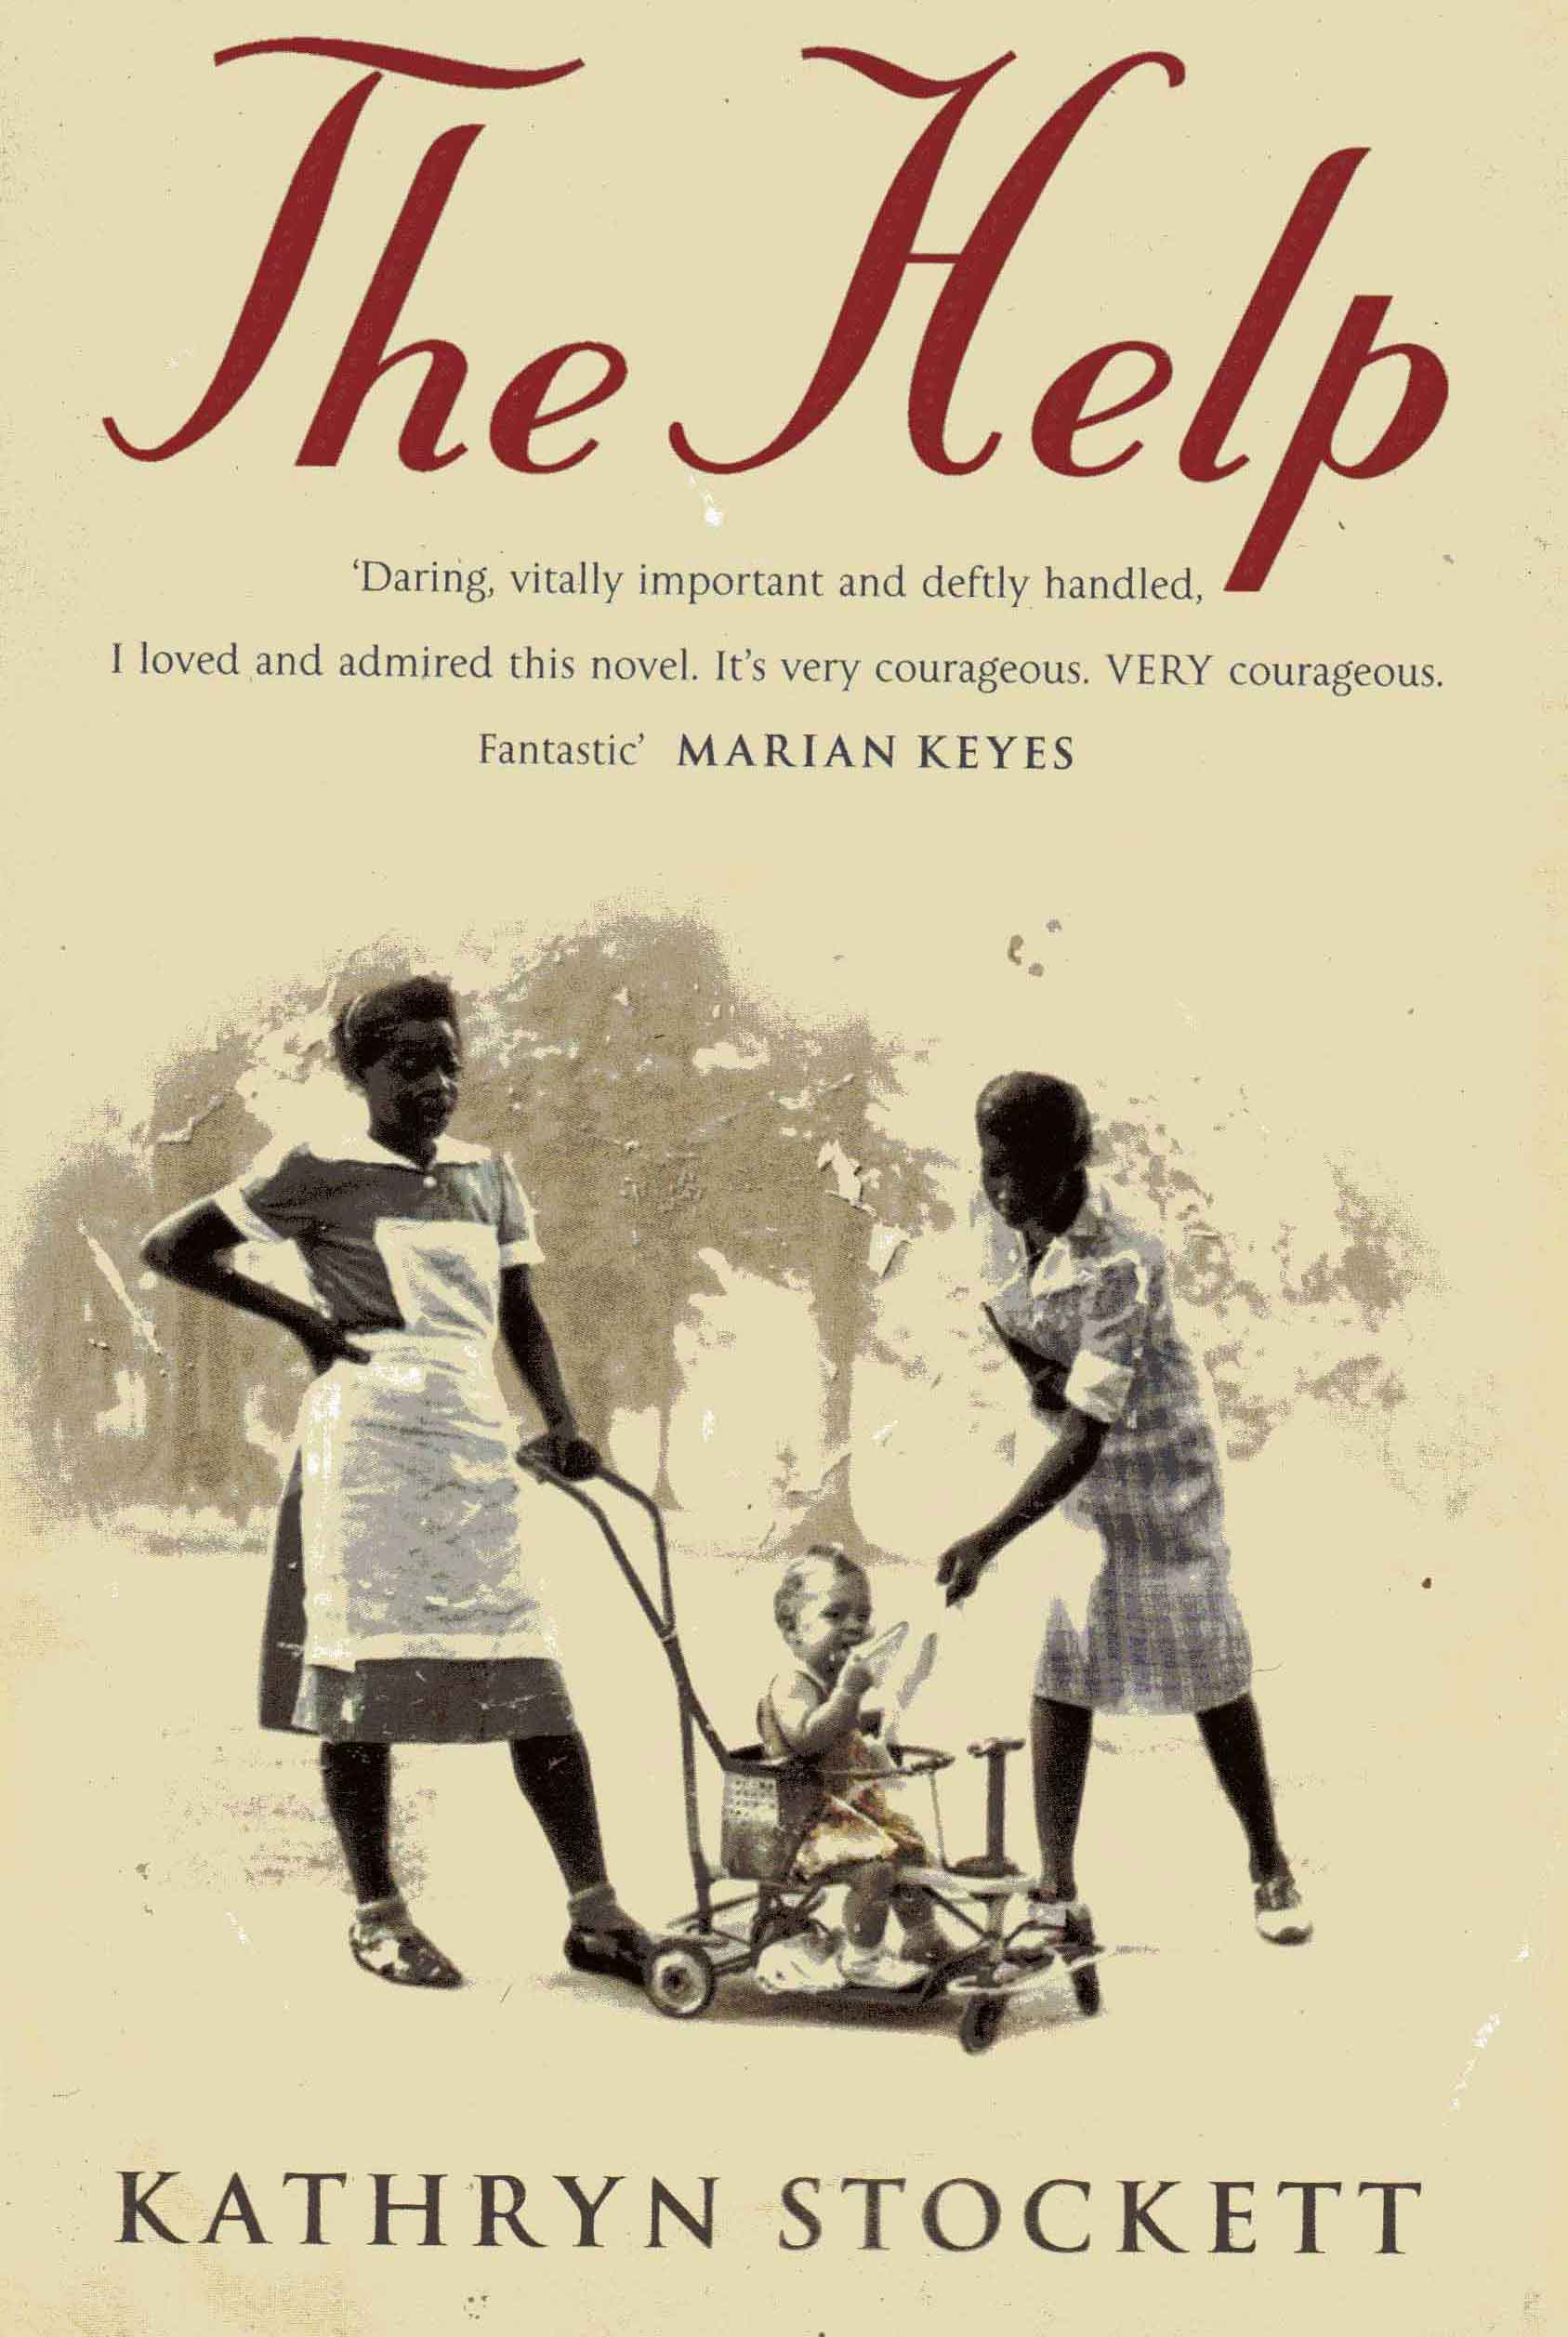 help by kathryn stockett essay the help by kathryn stockett essay